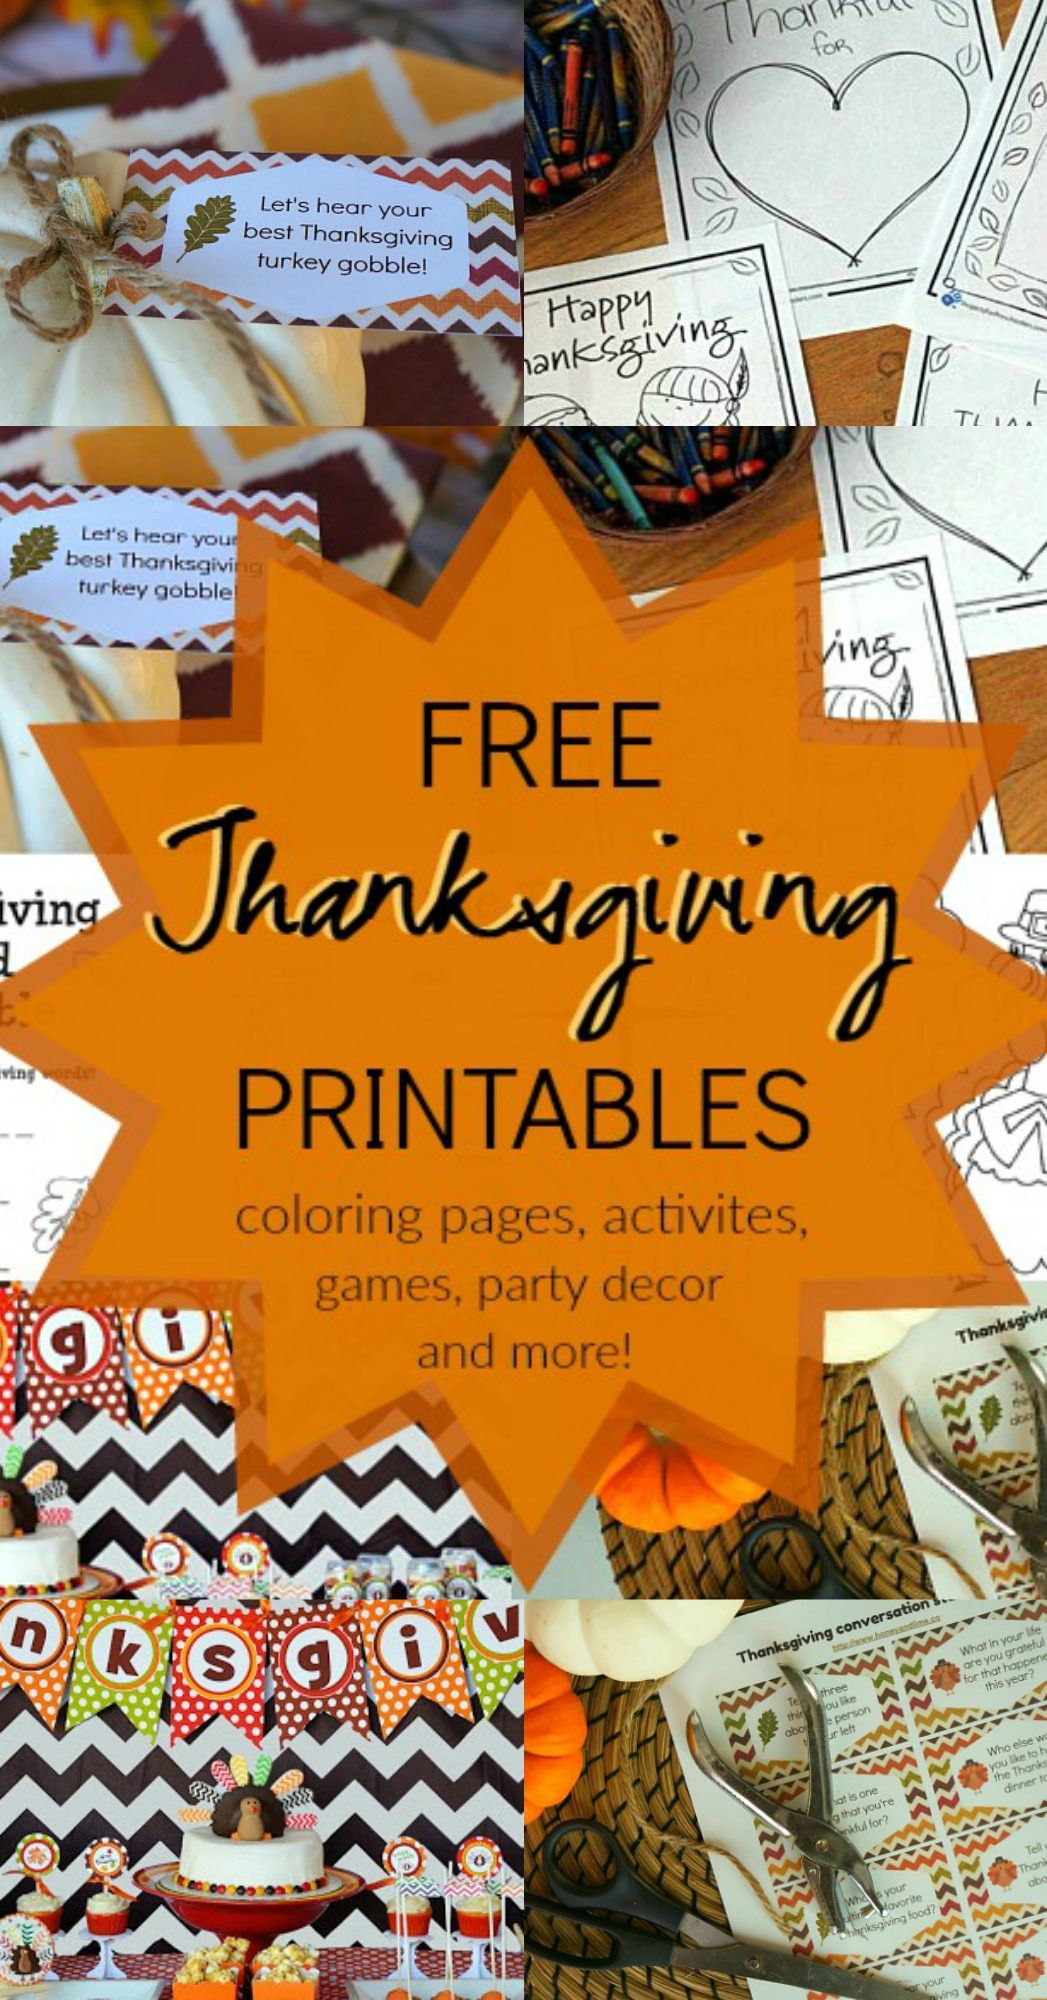 15 Thanksgiving Printables Coloring Pages Party Favors Decor Games